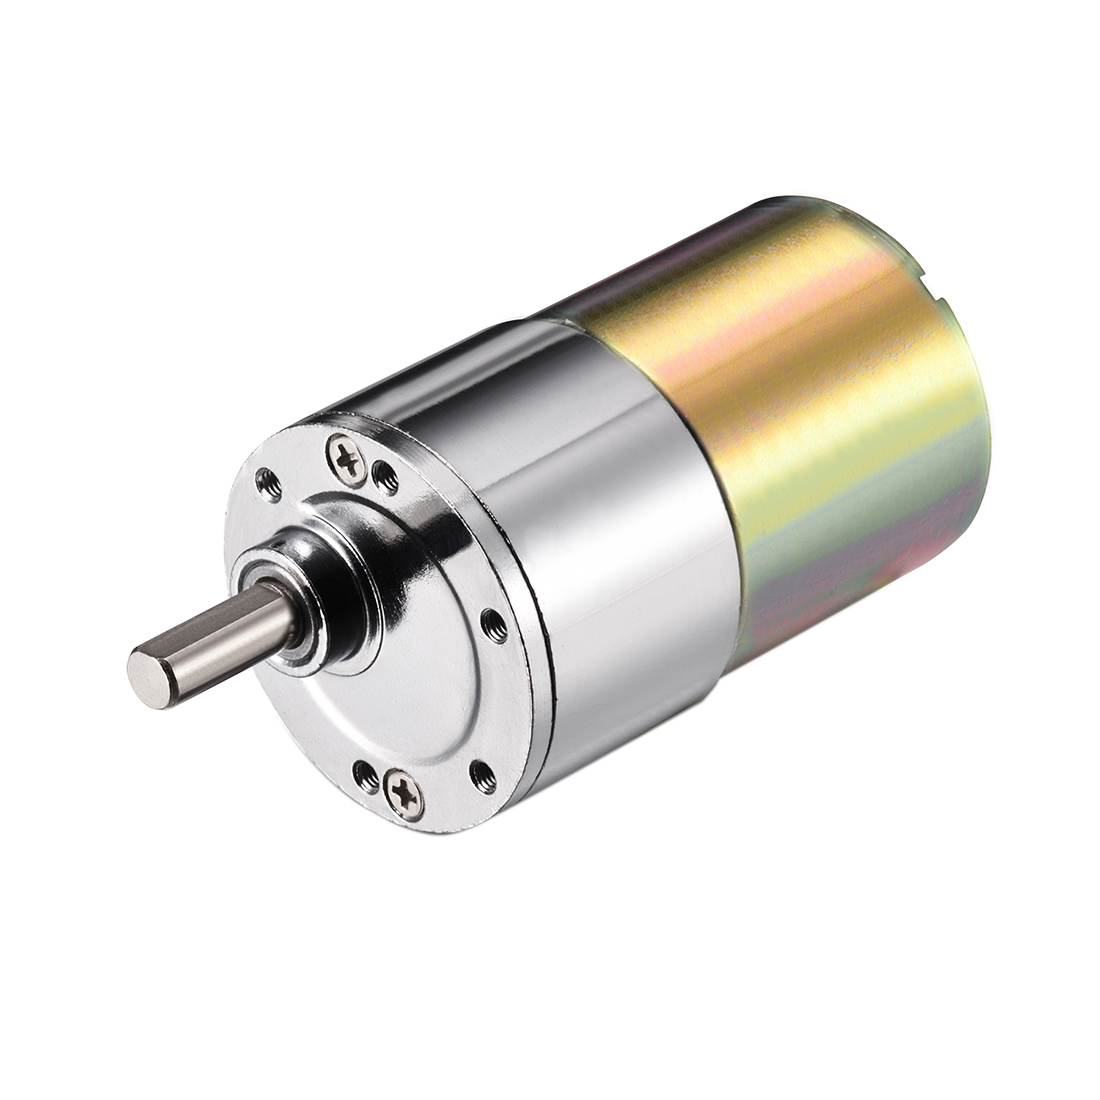 DC 24V 60RPM Micro Gear Box Motor Speed Reduction Electric Gearbox Eccentric Output Shaft